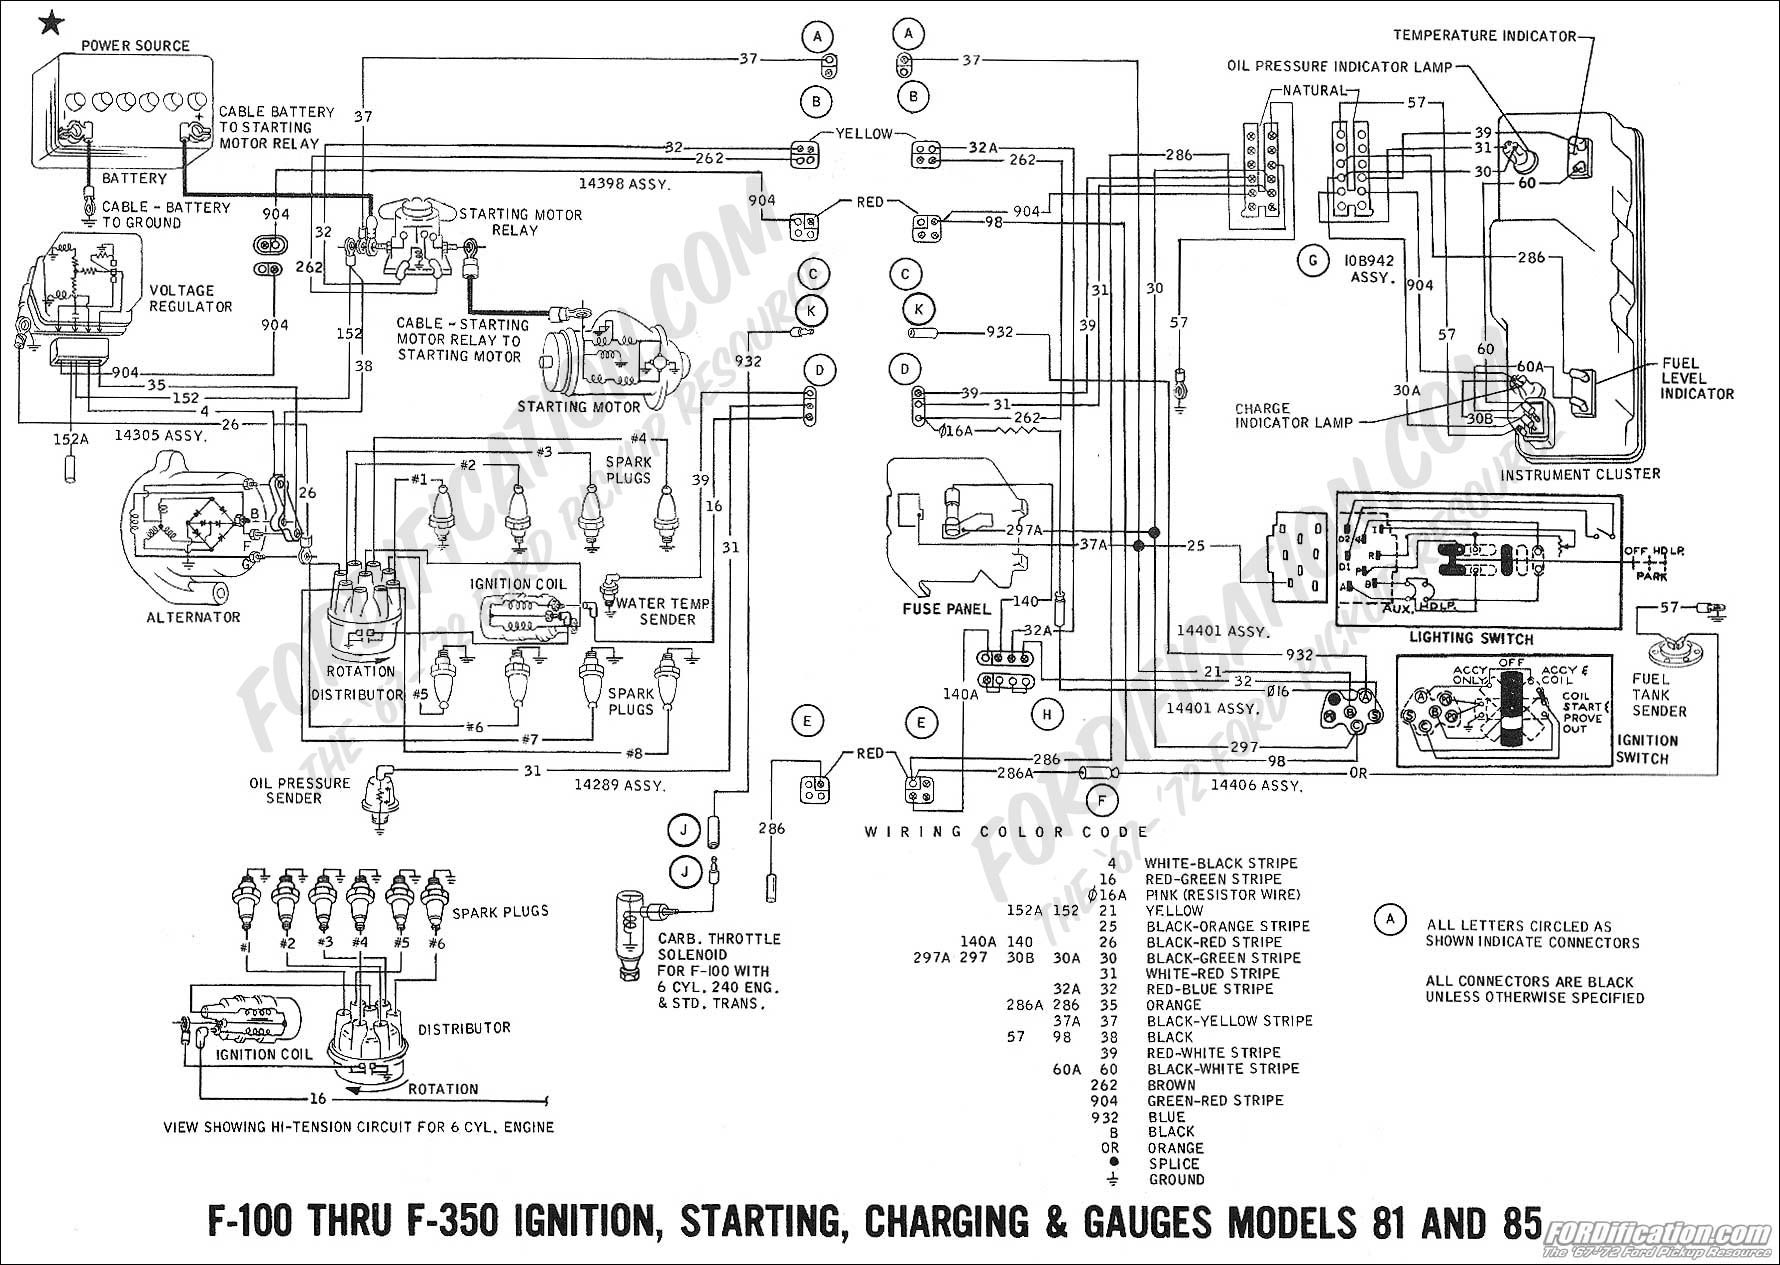 1968 Ford F700 Wiring - Function Wiring Diagram